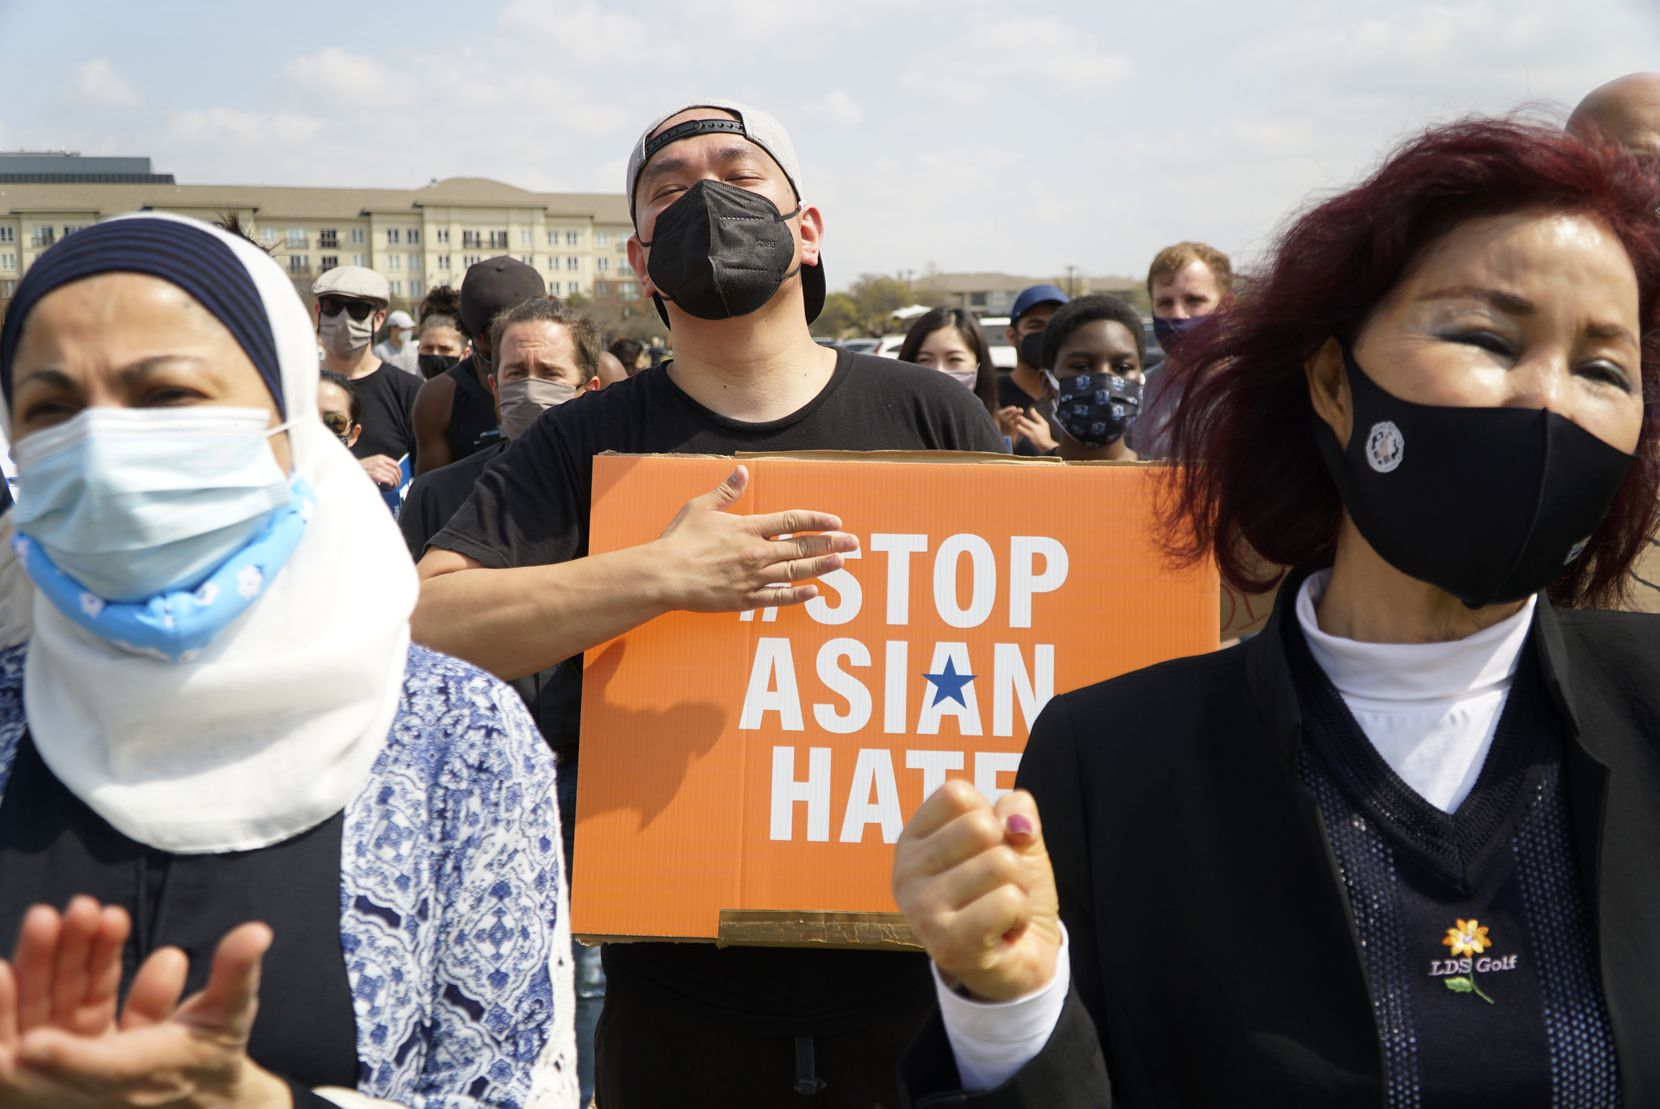 Sabina Ibraheem (from left), Mark Quach, and Kilja Park took part in a Stop Asian Hate rally in Dallas on March 27, 2021.